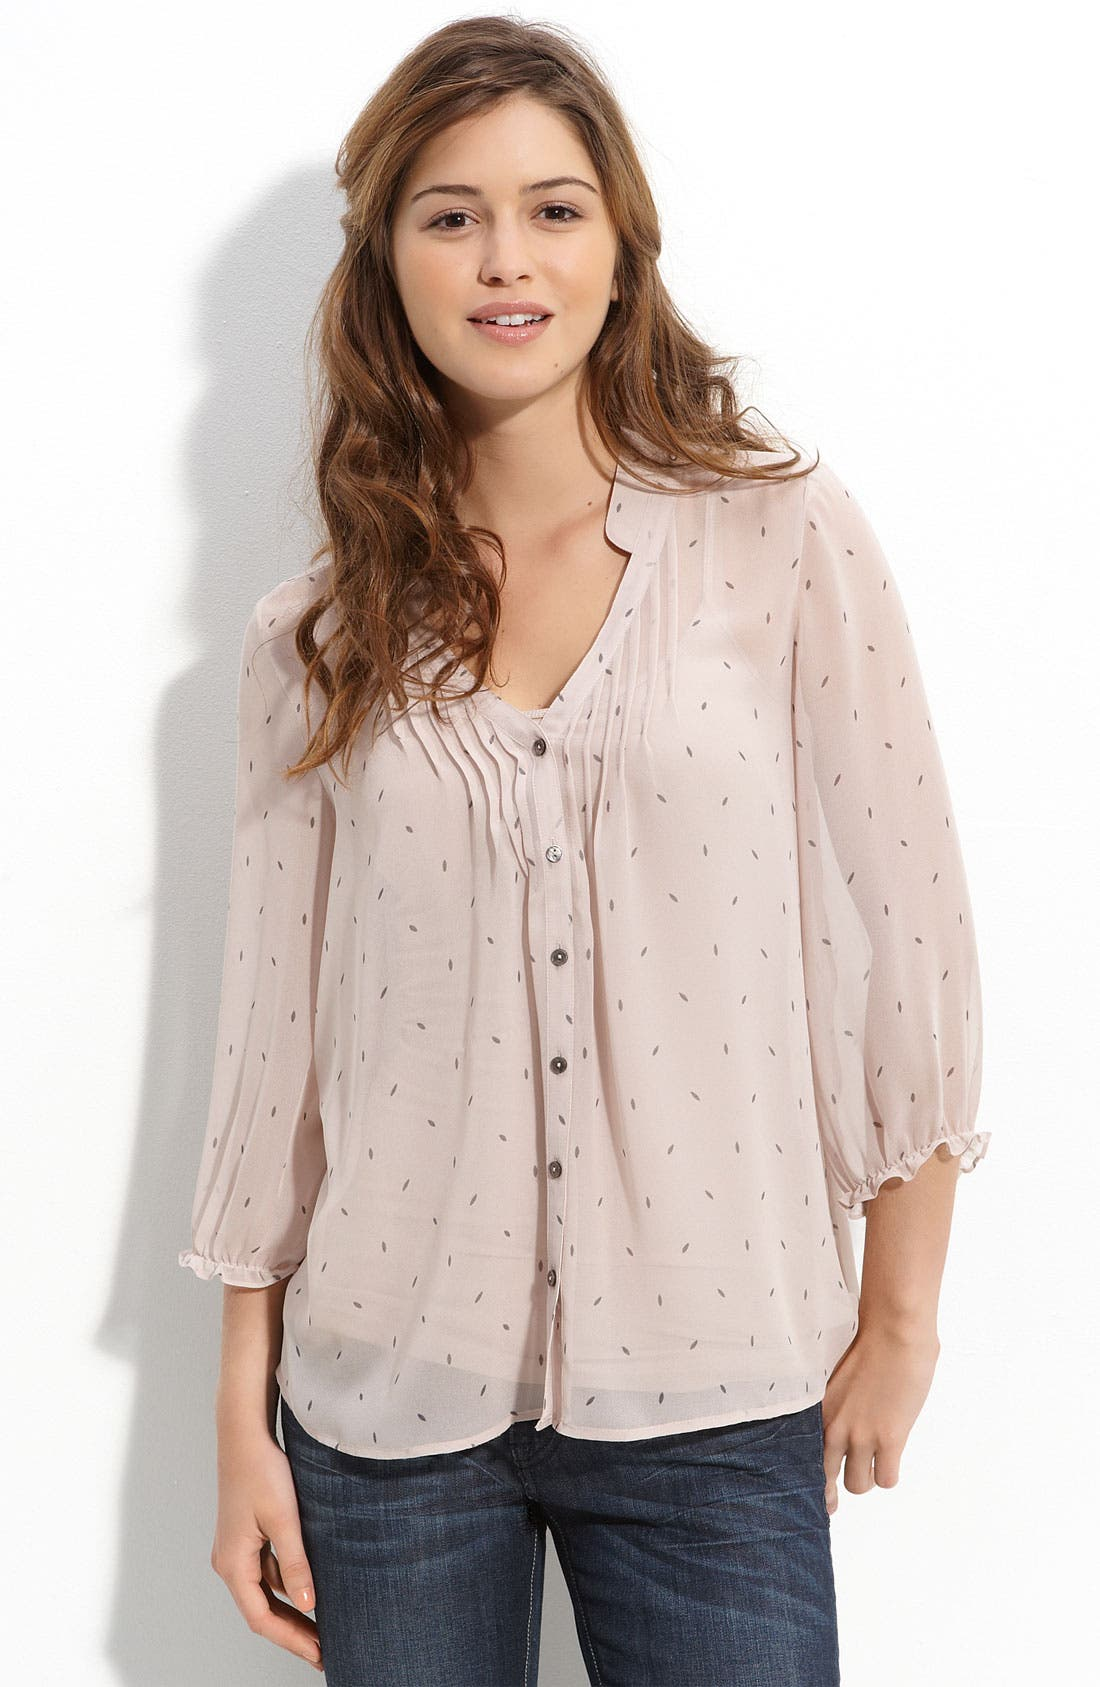 Alternate Image 1 Selected - Frenchi® Pintucked Chiffon Top (Juniors)